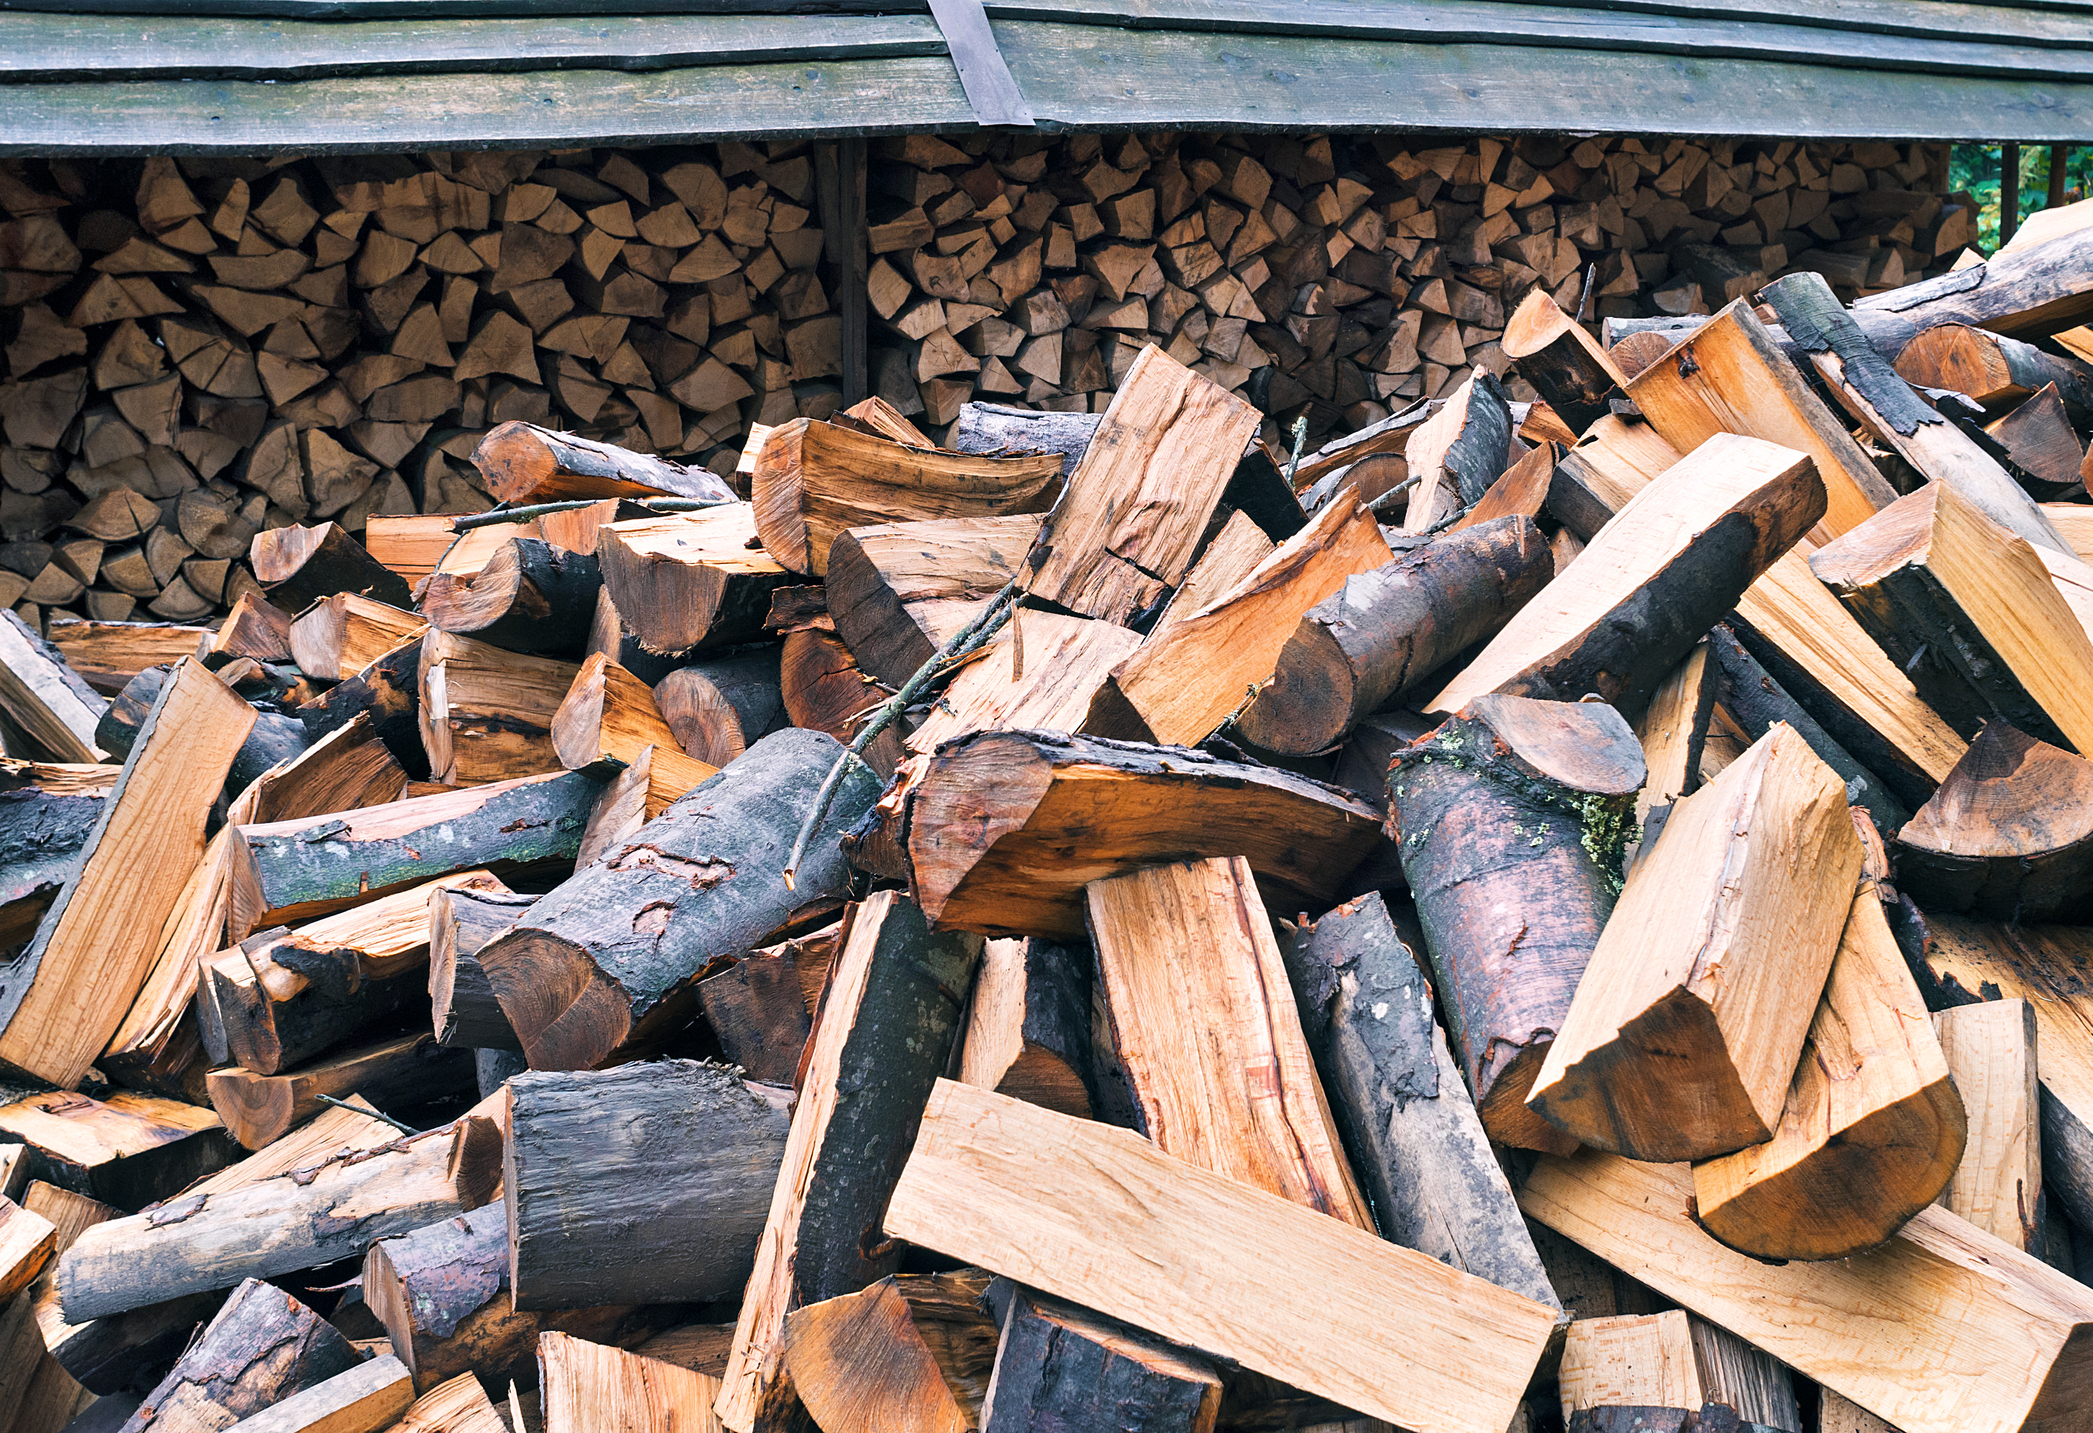 Woodchip and Logs - Tree surgeons have a duty of care to ensure that any waste they produce during the course of their work is safely disposed of. We are proud to say that 100% of our garden waste is recycled either by chipping, processing of taken to a recycling plant.